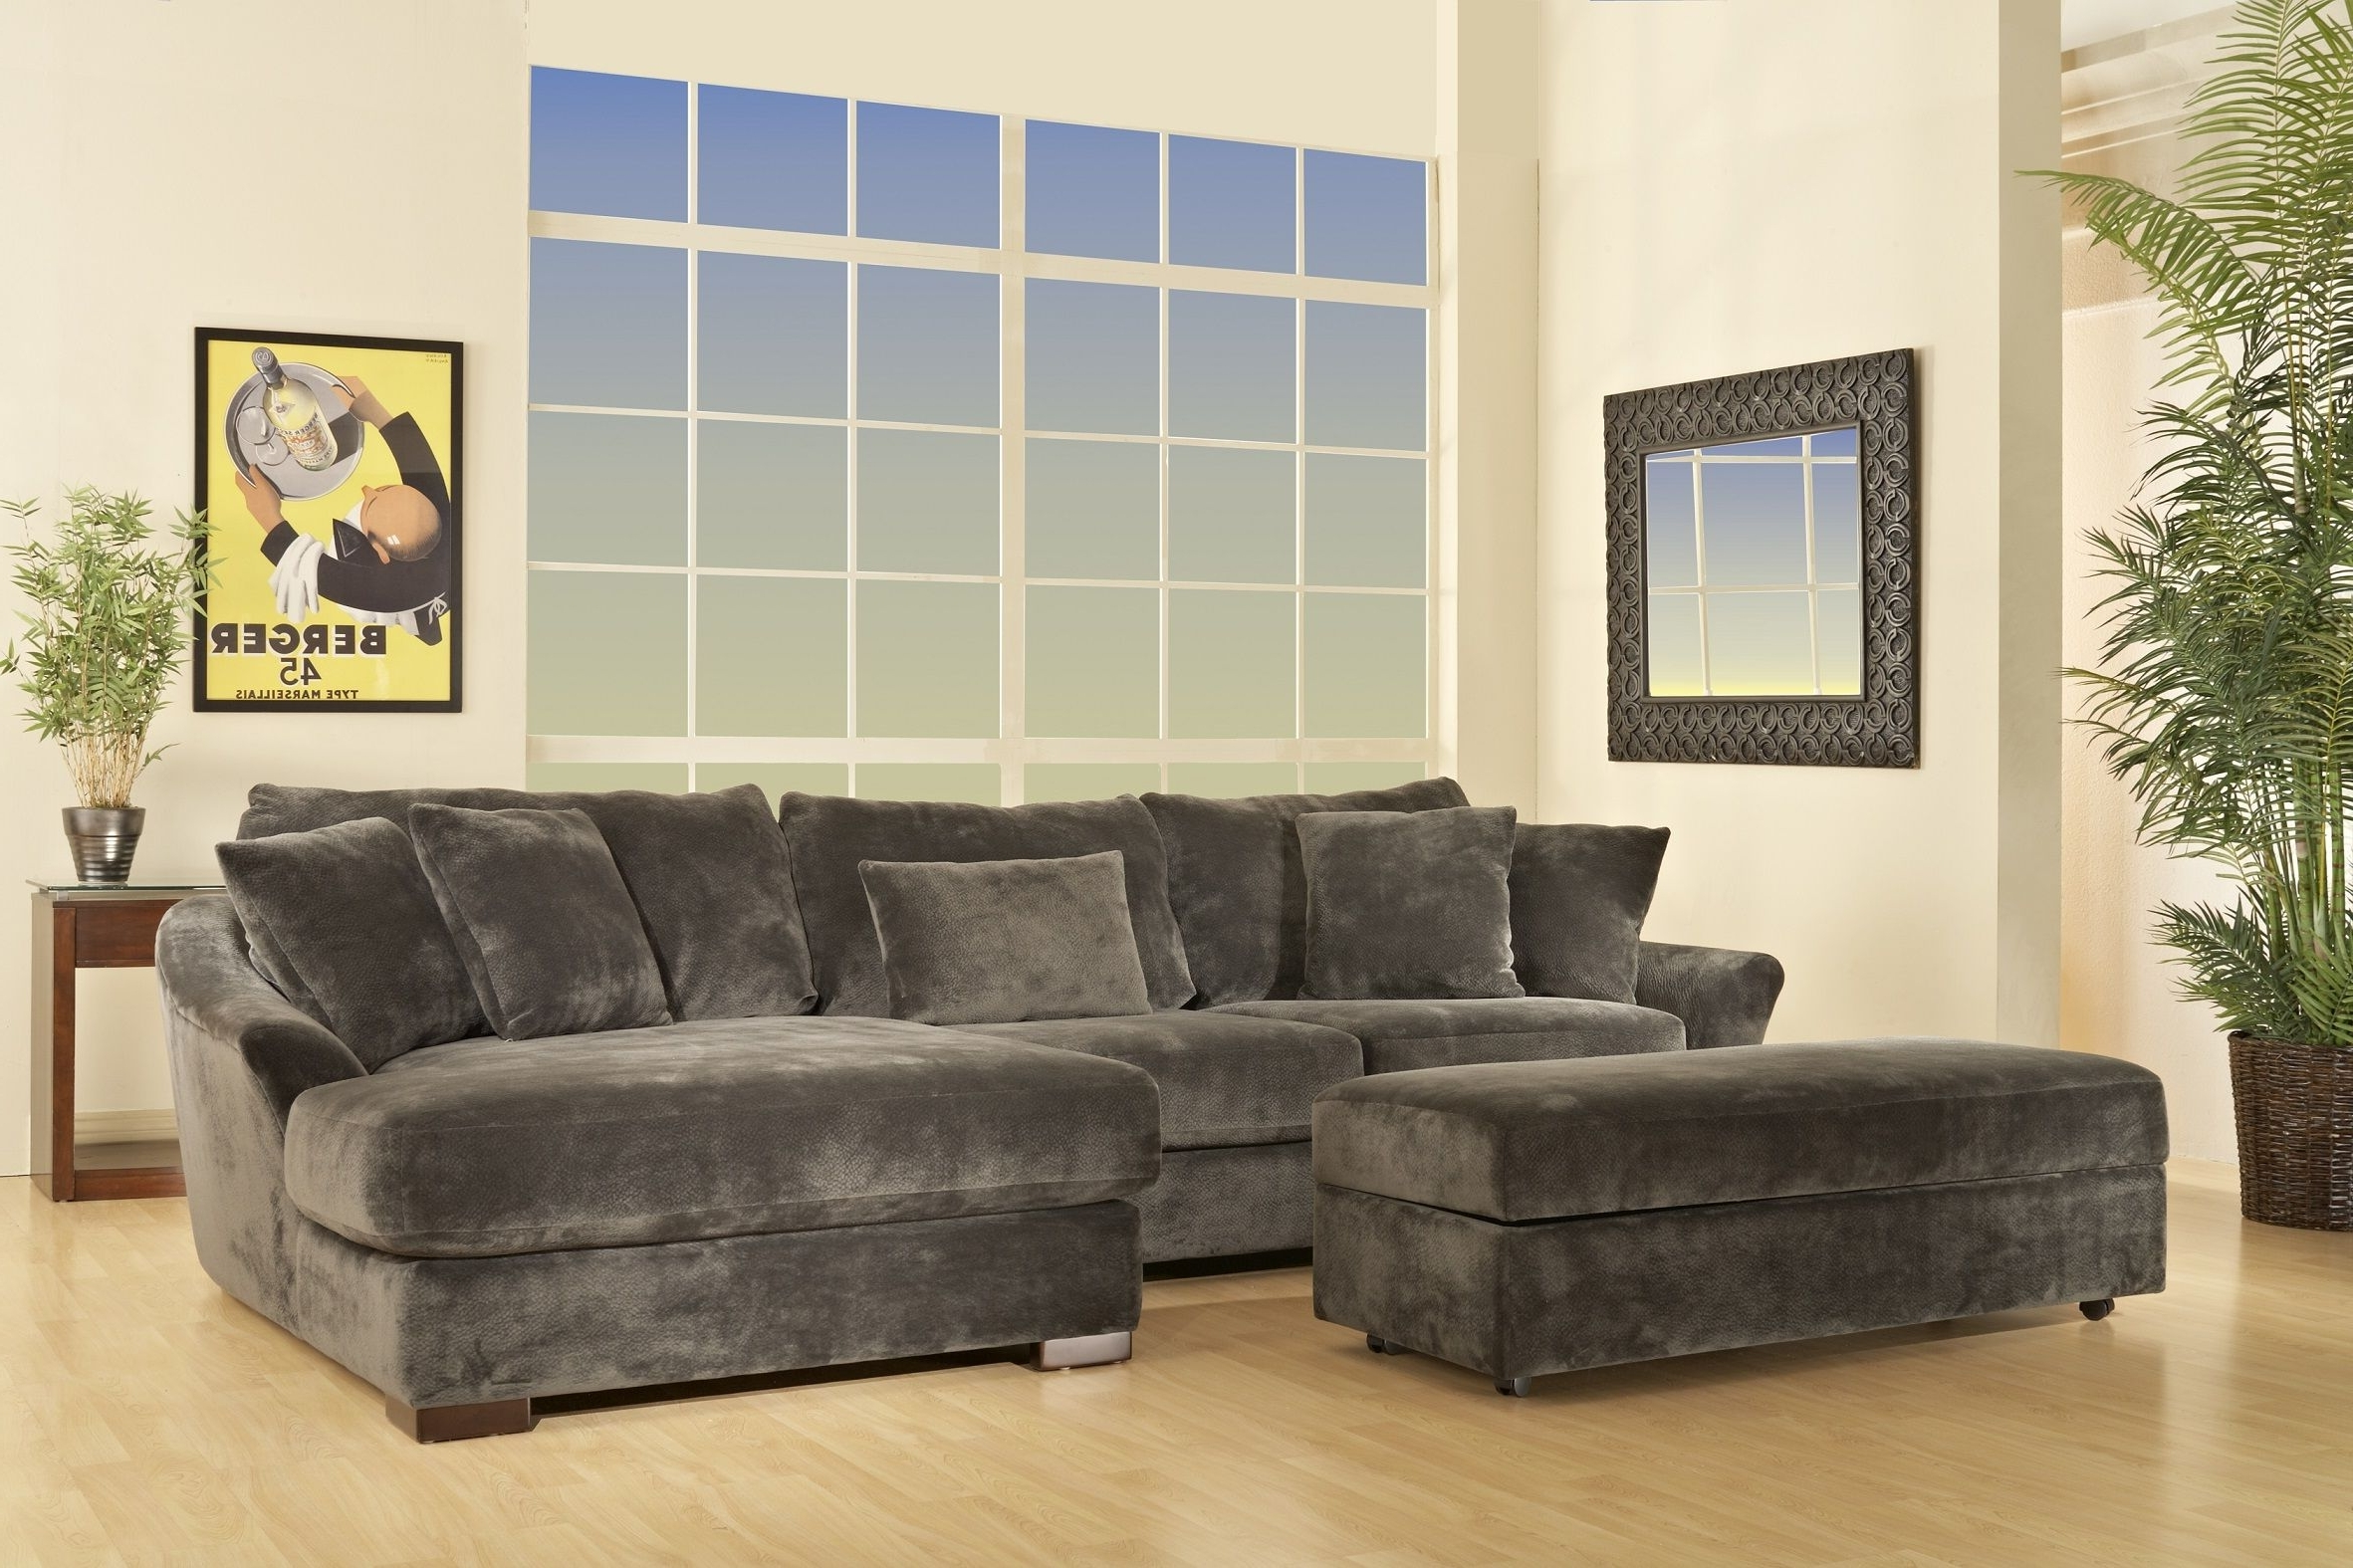 Famous Champion Brown Fabric 4 Peice Oversized Chaise Sectional Set For El Paso Sectional Sofas (View 8 of 20)